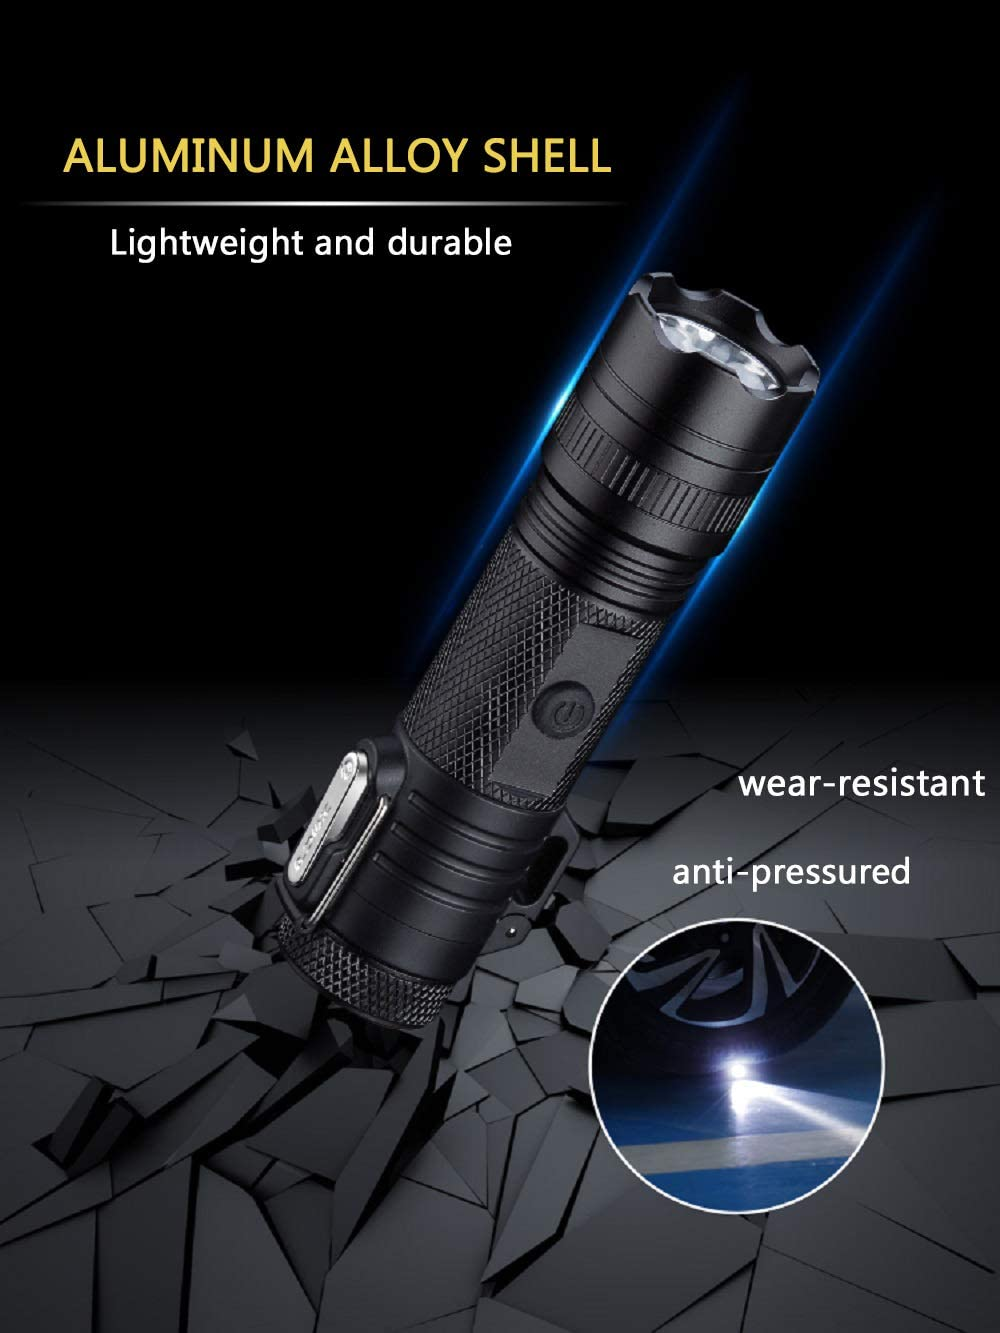 Windproof Electric Lighter for Outdoor Survival Hiking MORISK Waterproof Plasma Lighter USB Rechargeable Arc Lighters with tactical Flashlight EDC Camping Gadgets Cool Gifts for Men Dad Husband